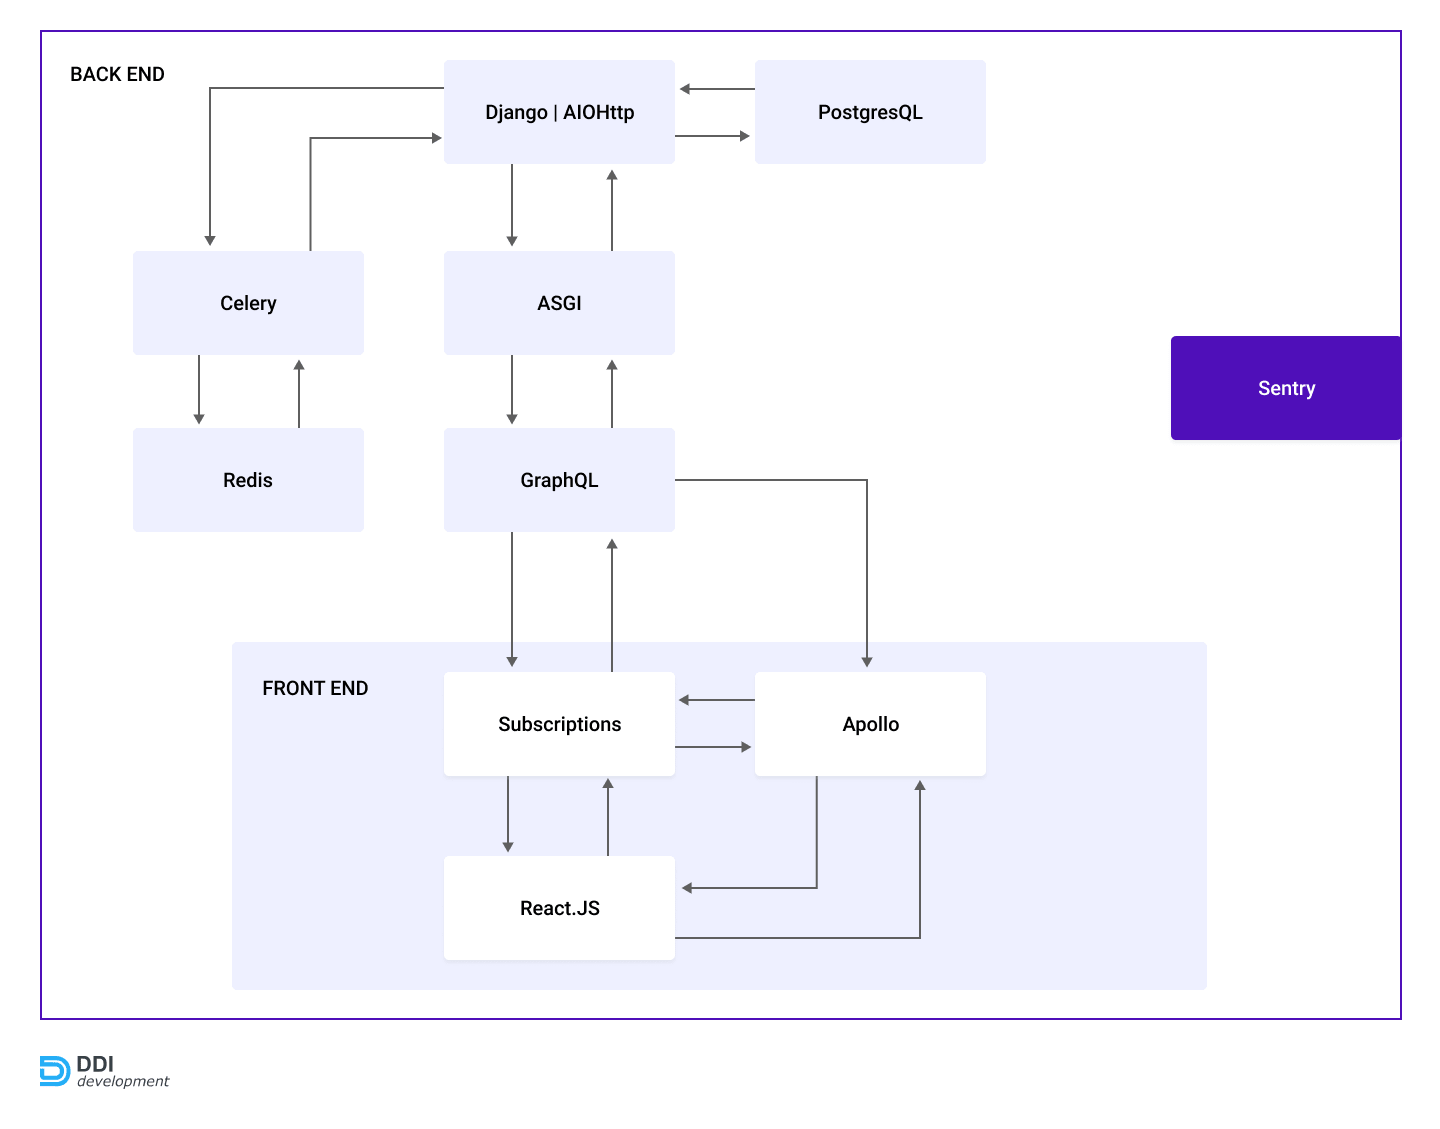 Project structure of the task management platform